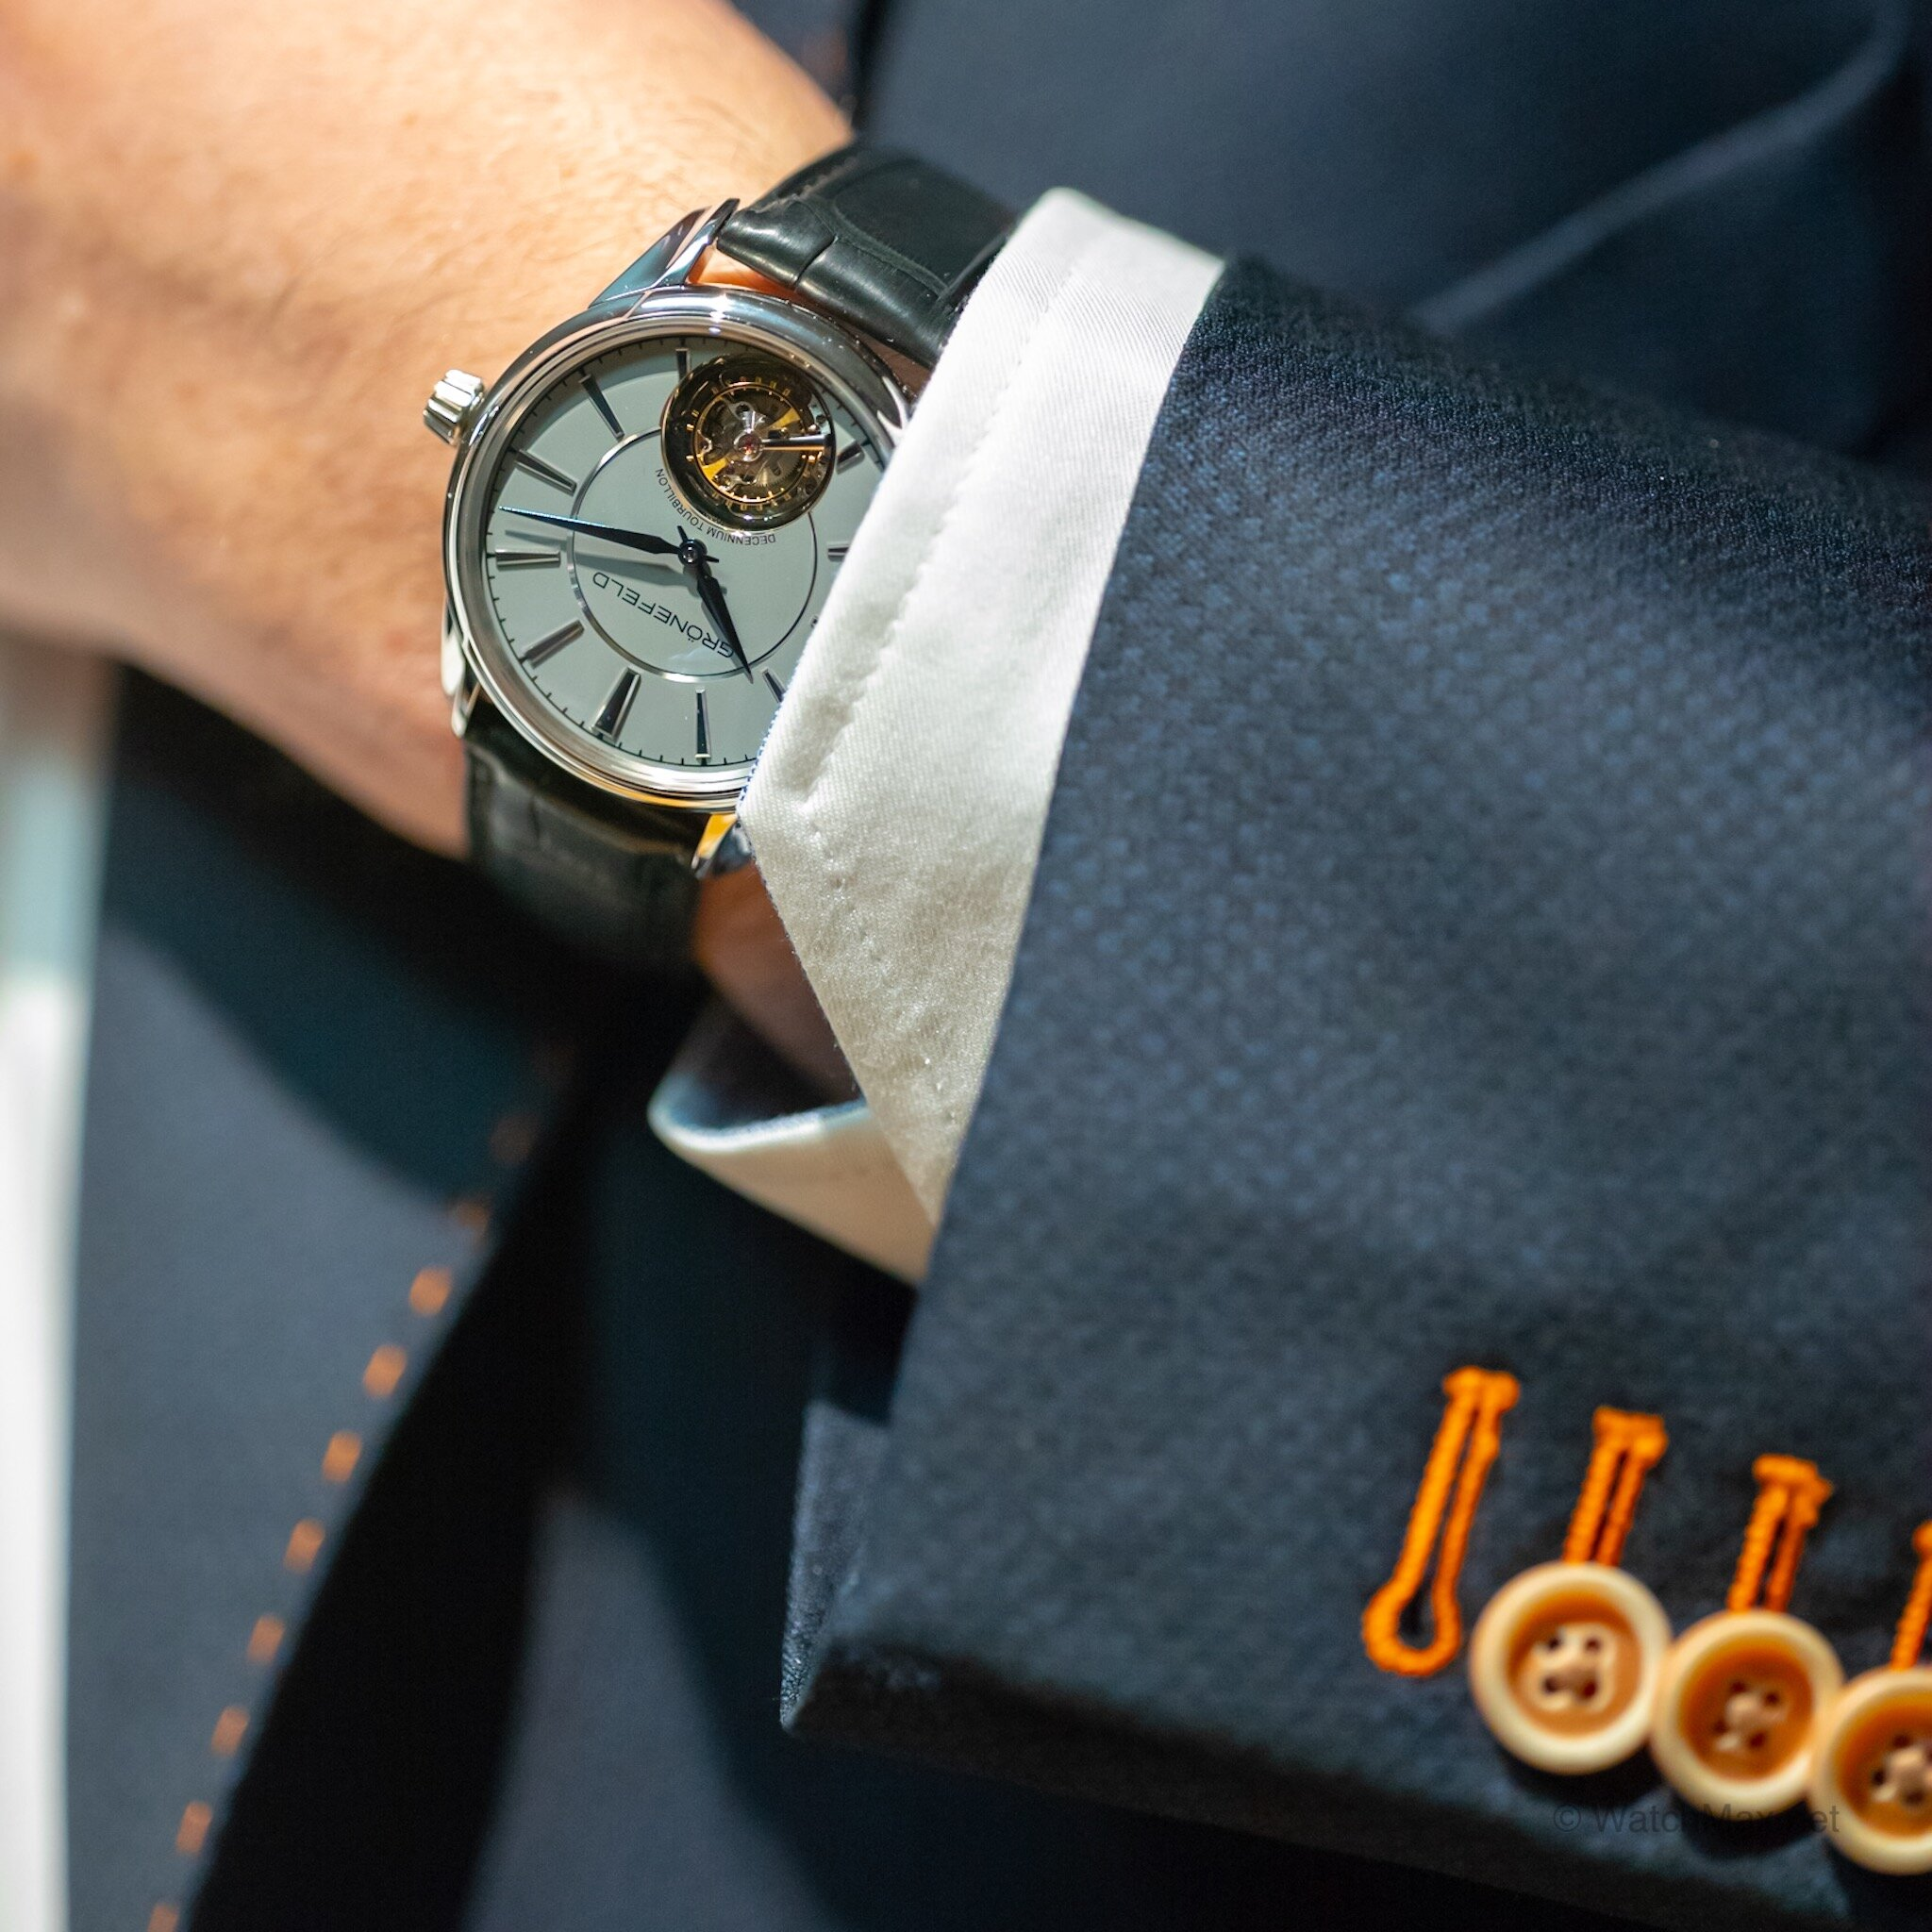 Grönefeld Decennium Tourbillon and 2019 Novelties First Look - The Horological Brothers are celebrating 10 years creating some of the most beautiful watches this side of Switzerland, in The Netherlands to be exact. What could the brothers show me for this special anniversary?Read on for a brief first look at a special anniversary limited edition watch, some 2019 novelties, and also an up coming summer special feature with them. Read more.